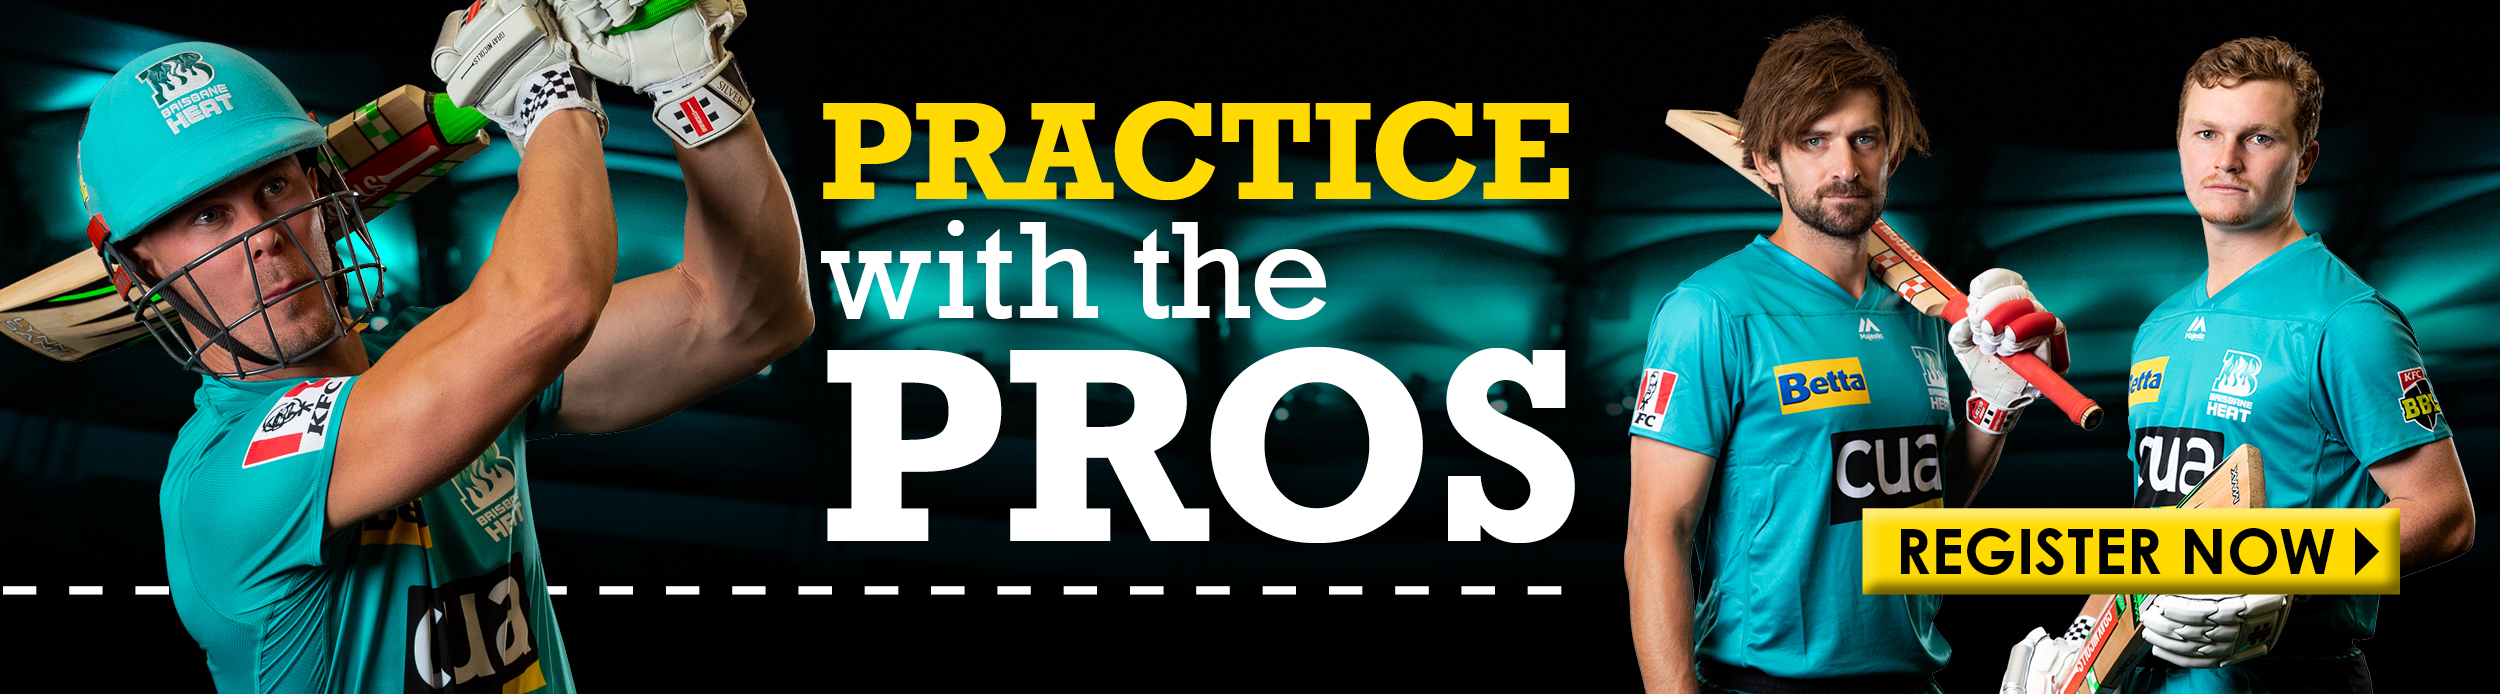 BRISBANE HEAT - Practice with the pros - LANDING PAGE BANNER 900x250-1